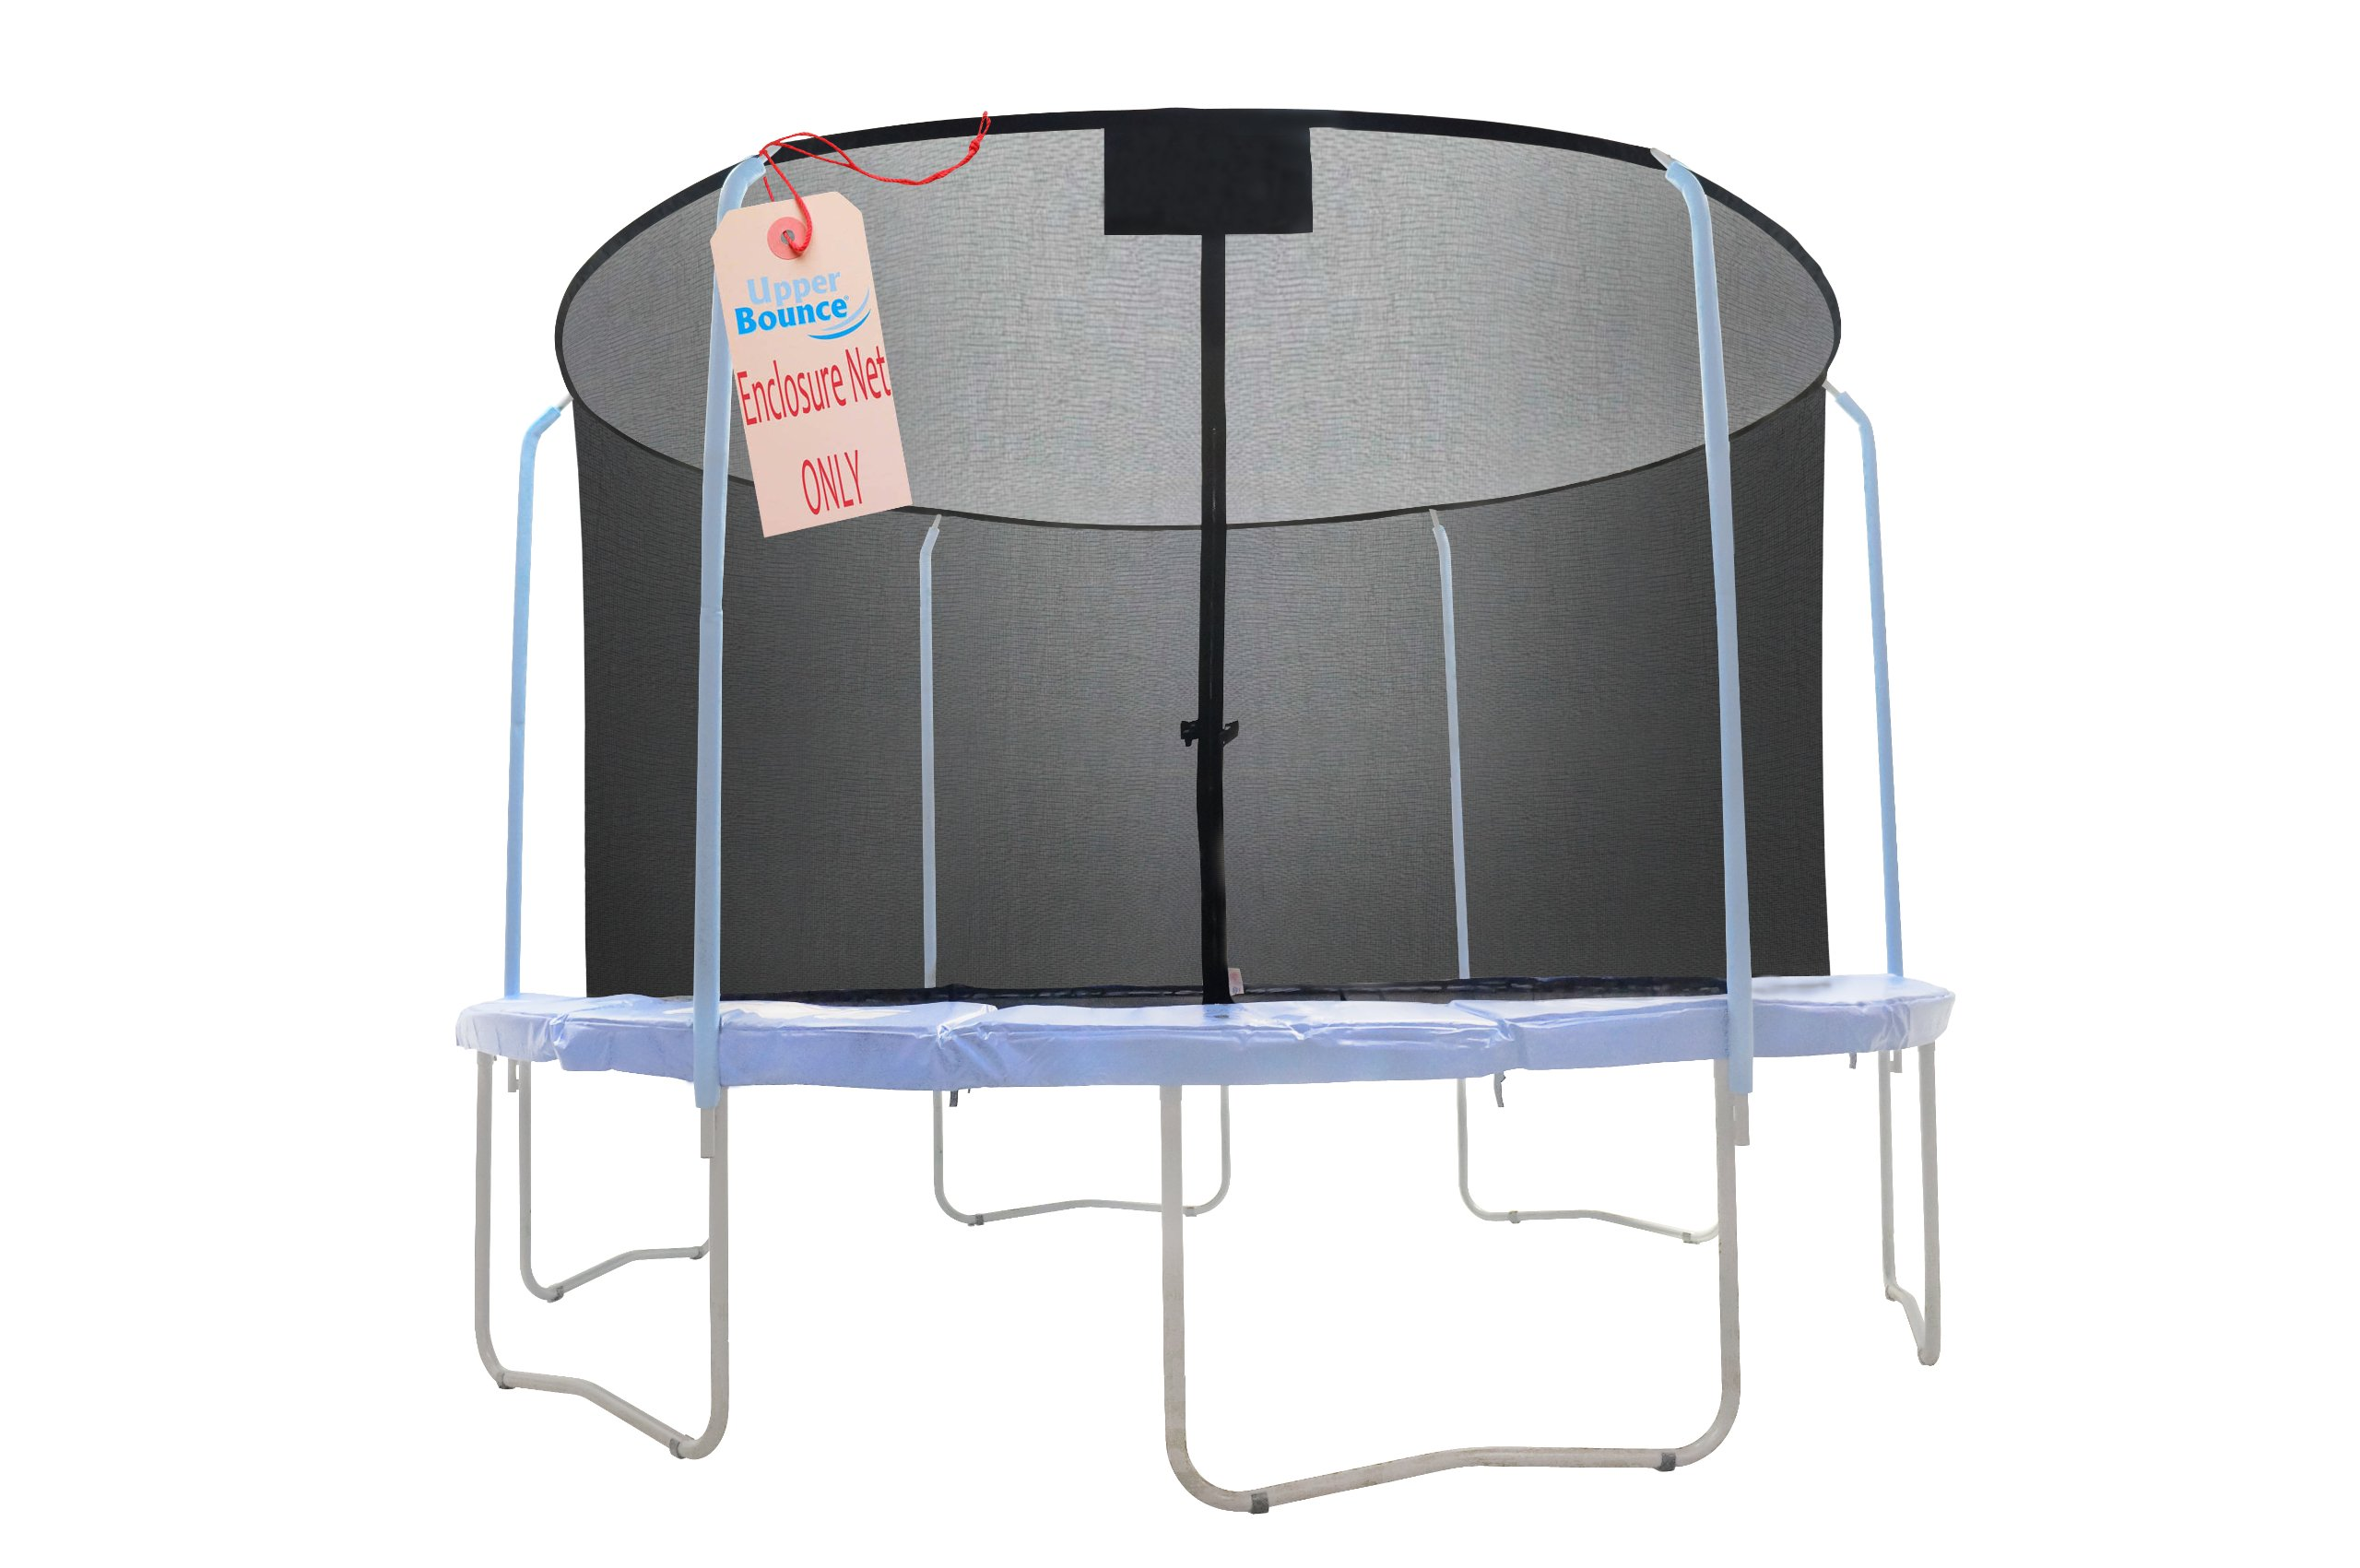 SKYTRIC Trampoline Enclosure Net (Universal) 15 ft Frame: 6 Curved Pole: with Top Ring Enclosure Systems -Sleeve on top Type- by SKYTRIC (Image #2)